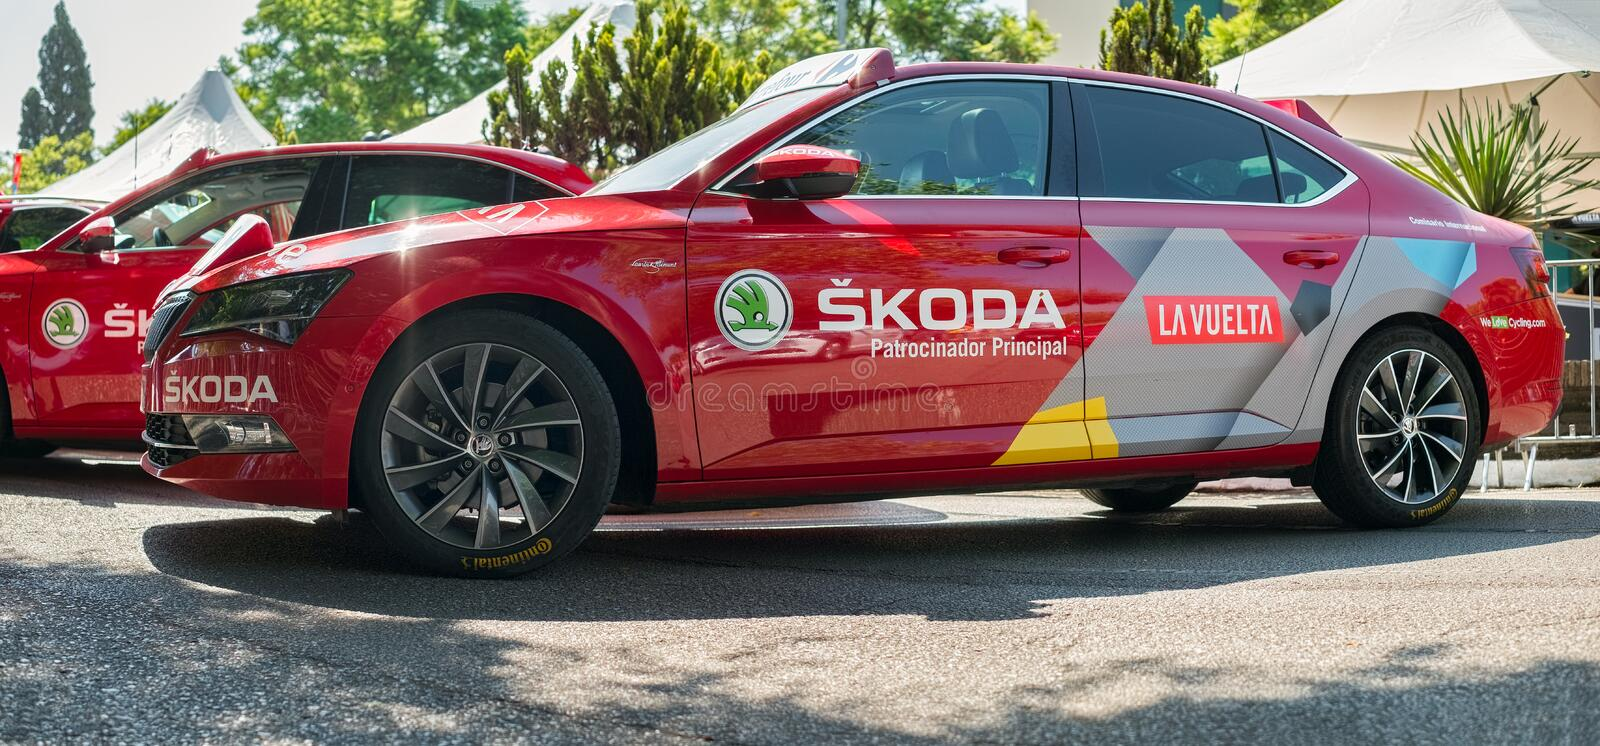 He SKODA advertisement cars parked at the start of the Vuelta de Espana 2018 stock photos